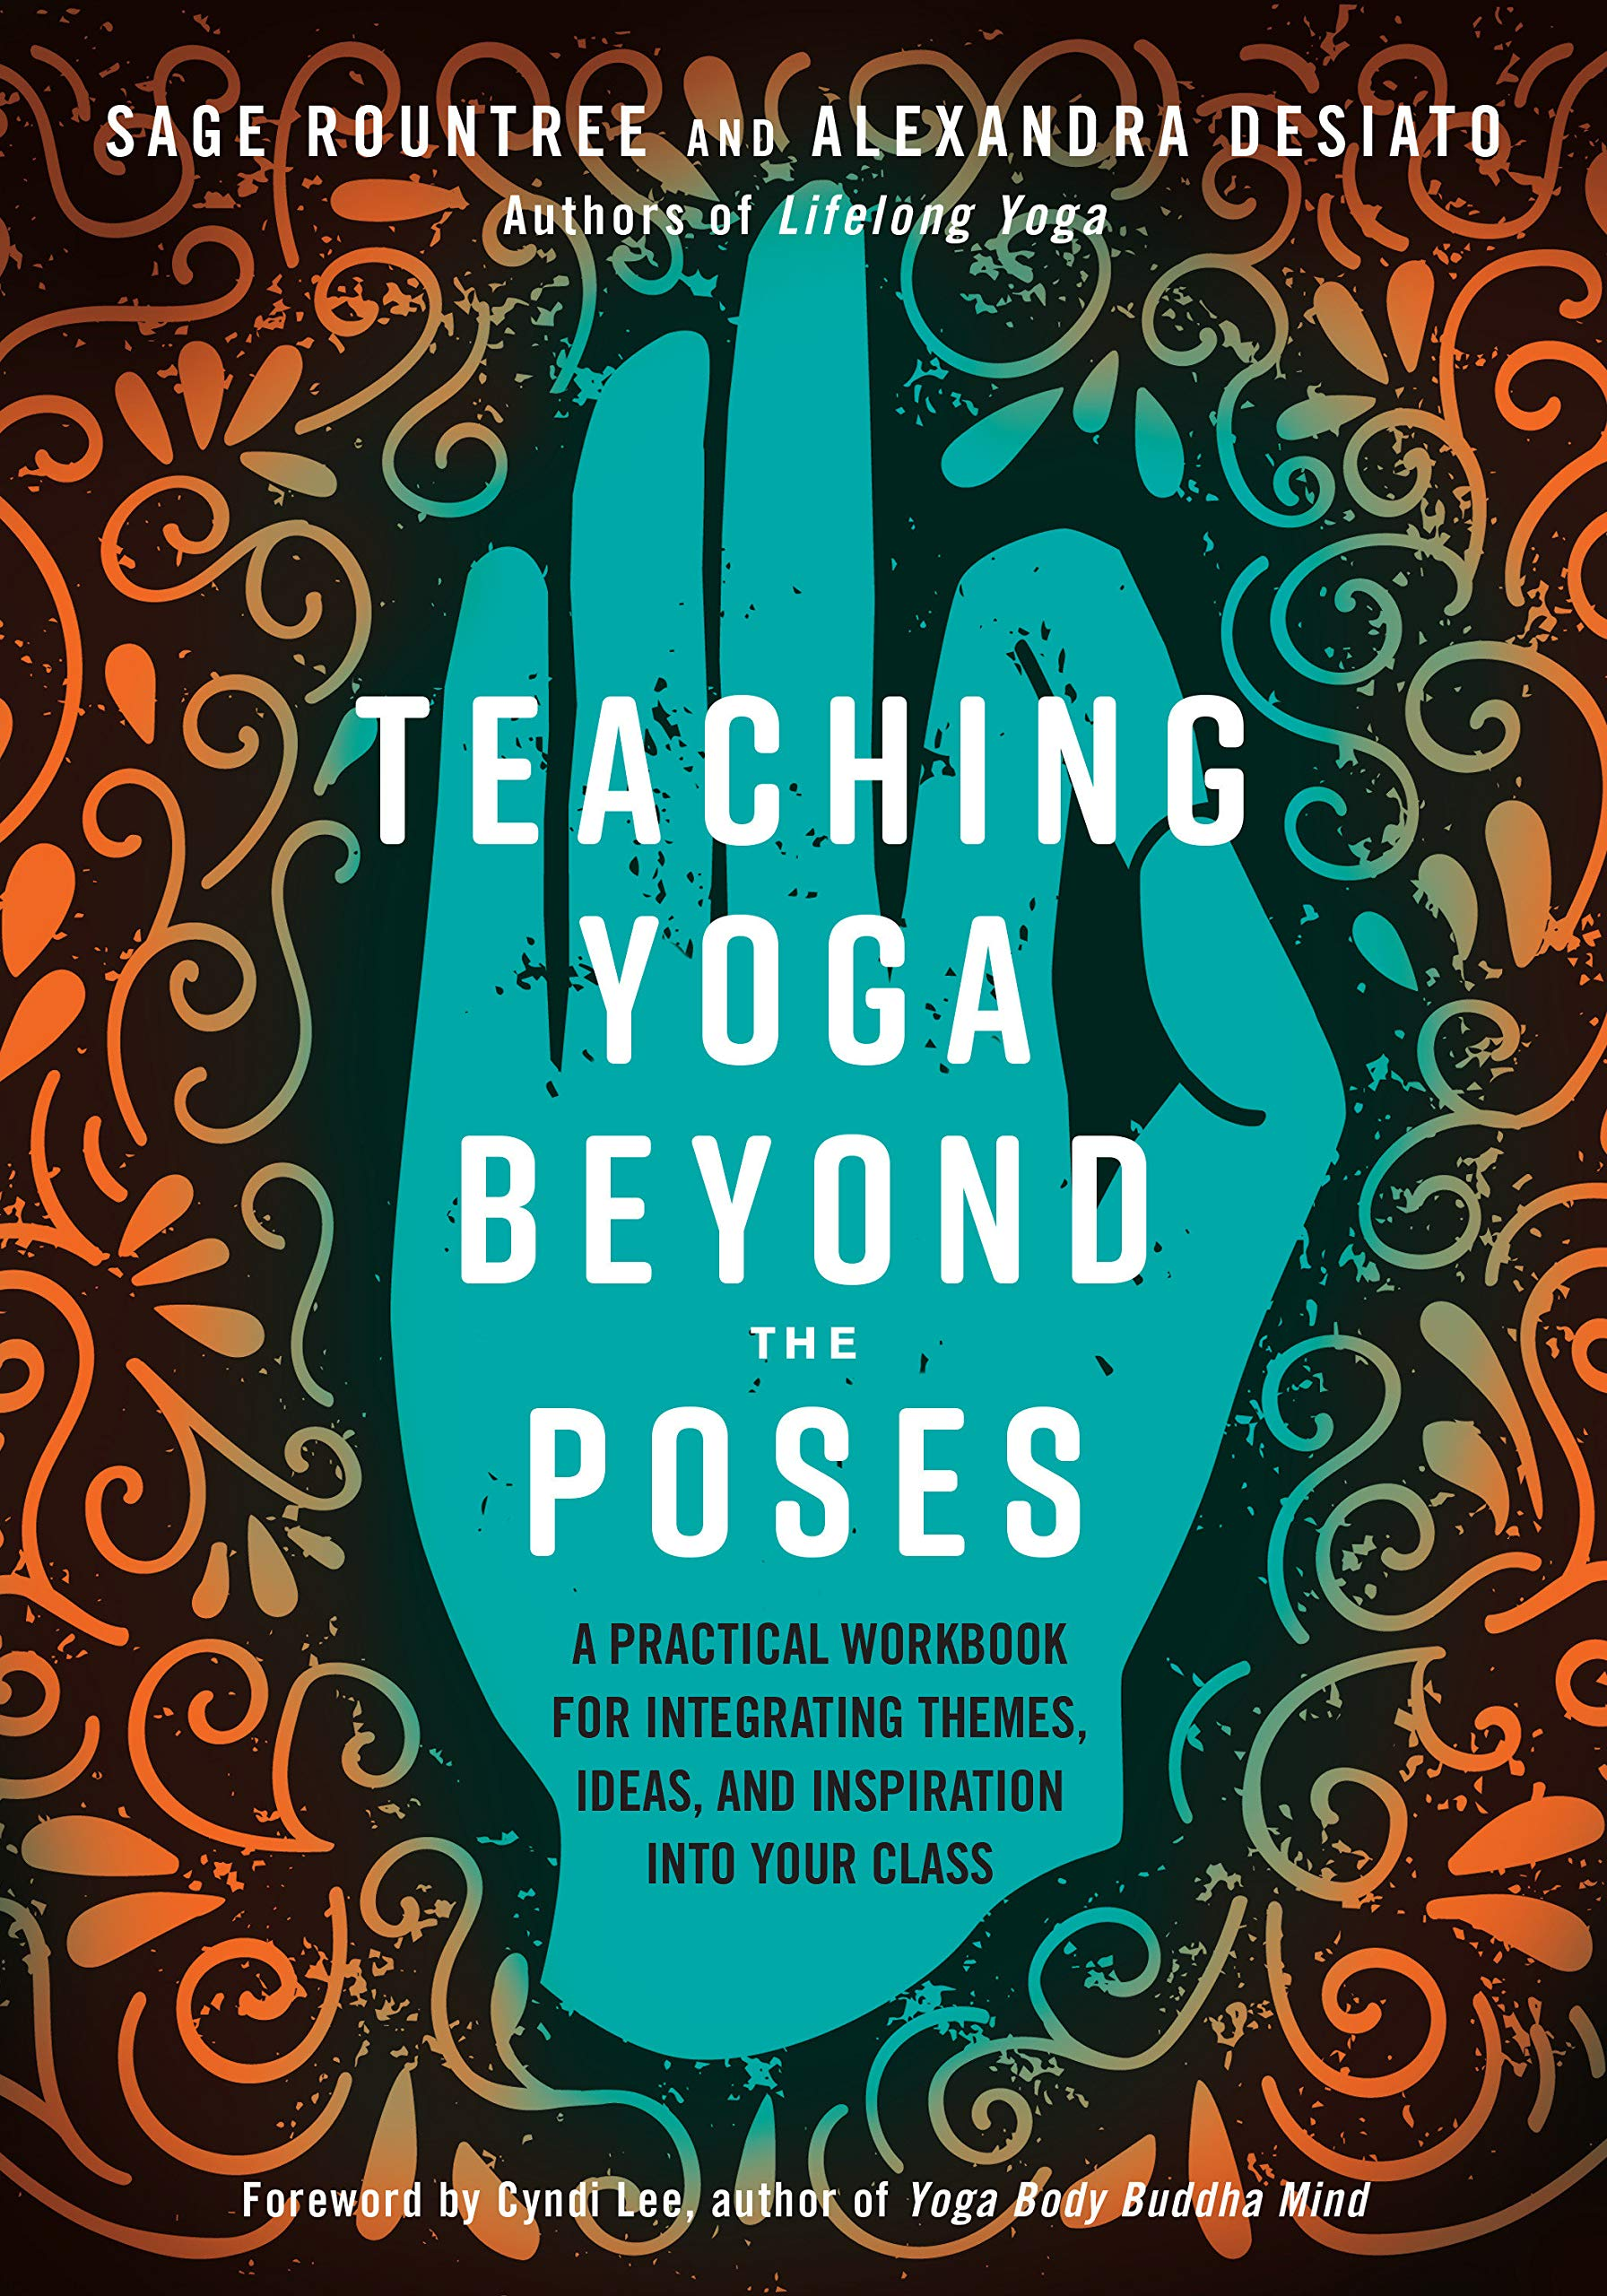 Teaching Yoga Beyond The Poses  A Practical Workbook For Integrating Themes Ideas And Inspiration Into Your Class